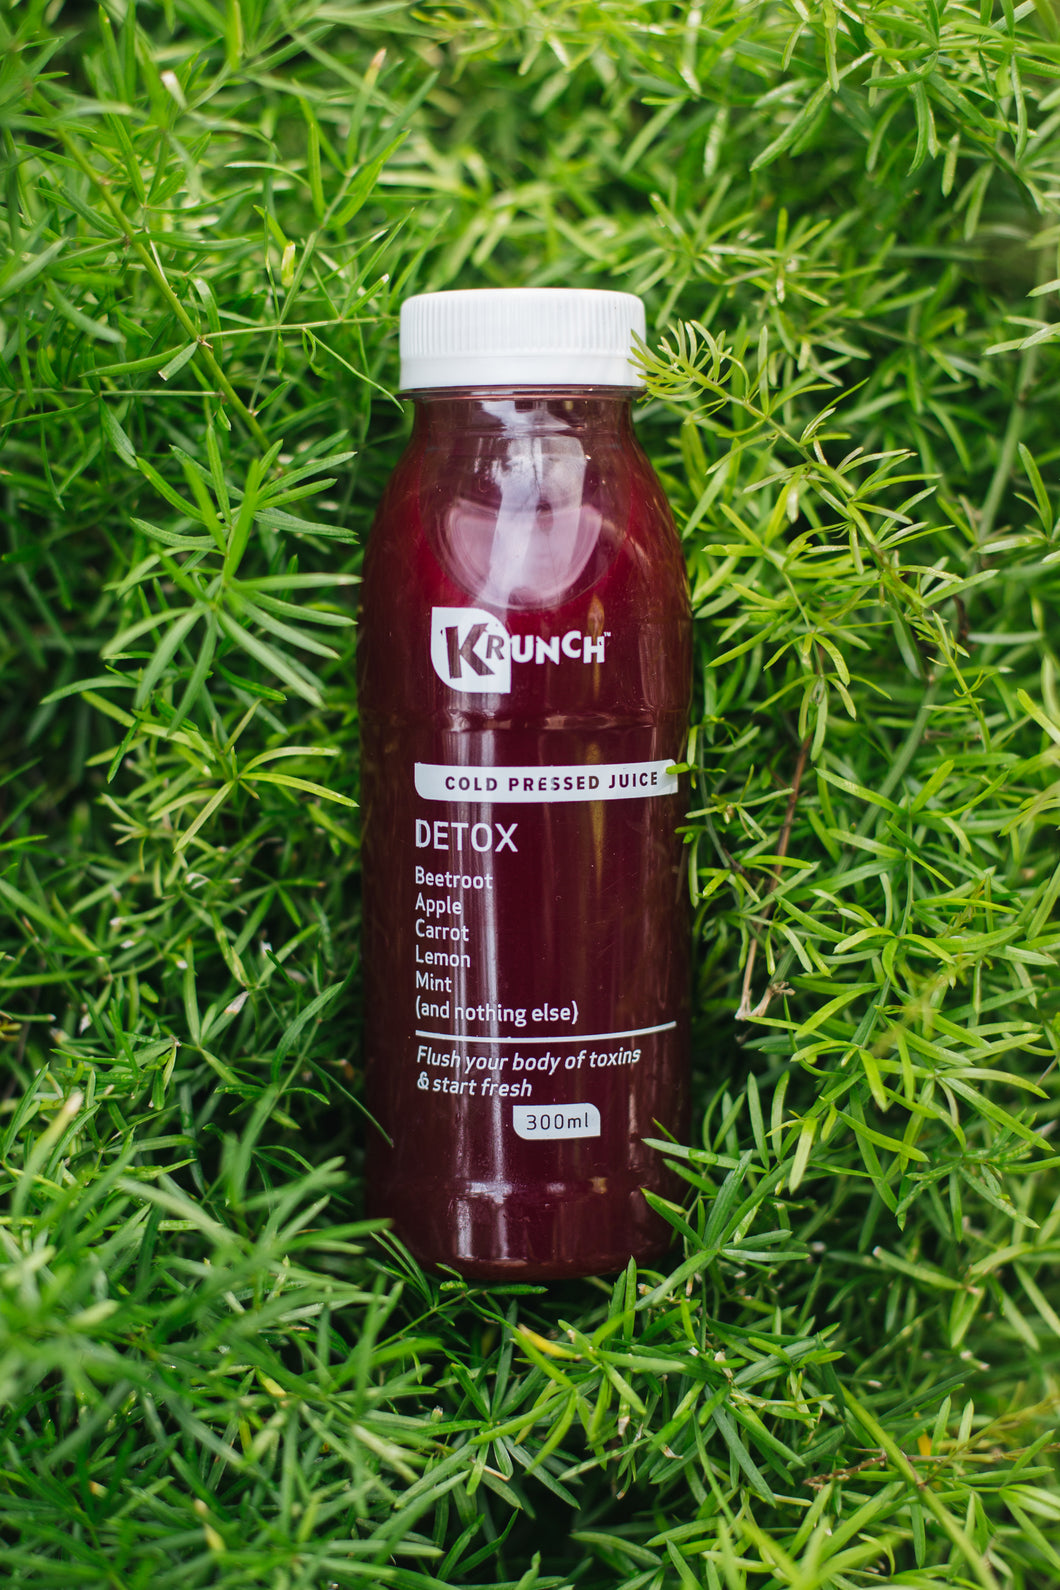 Detox Cold Pressed Juice 300ml